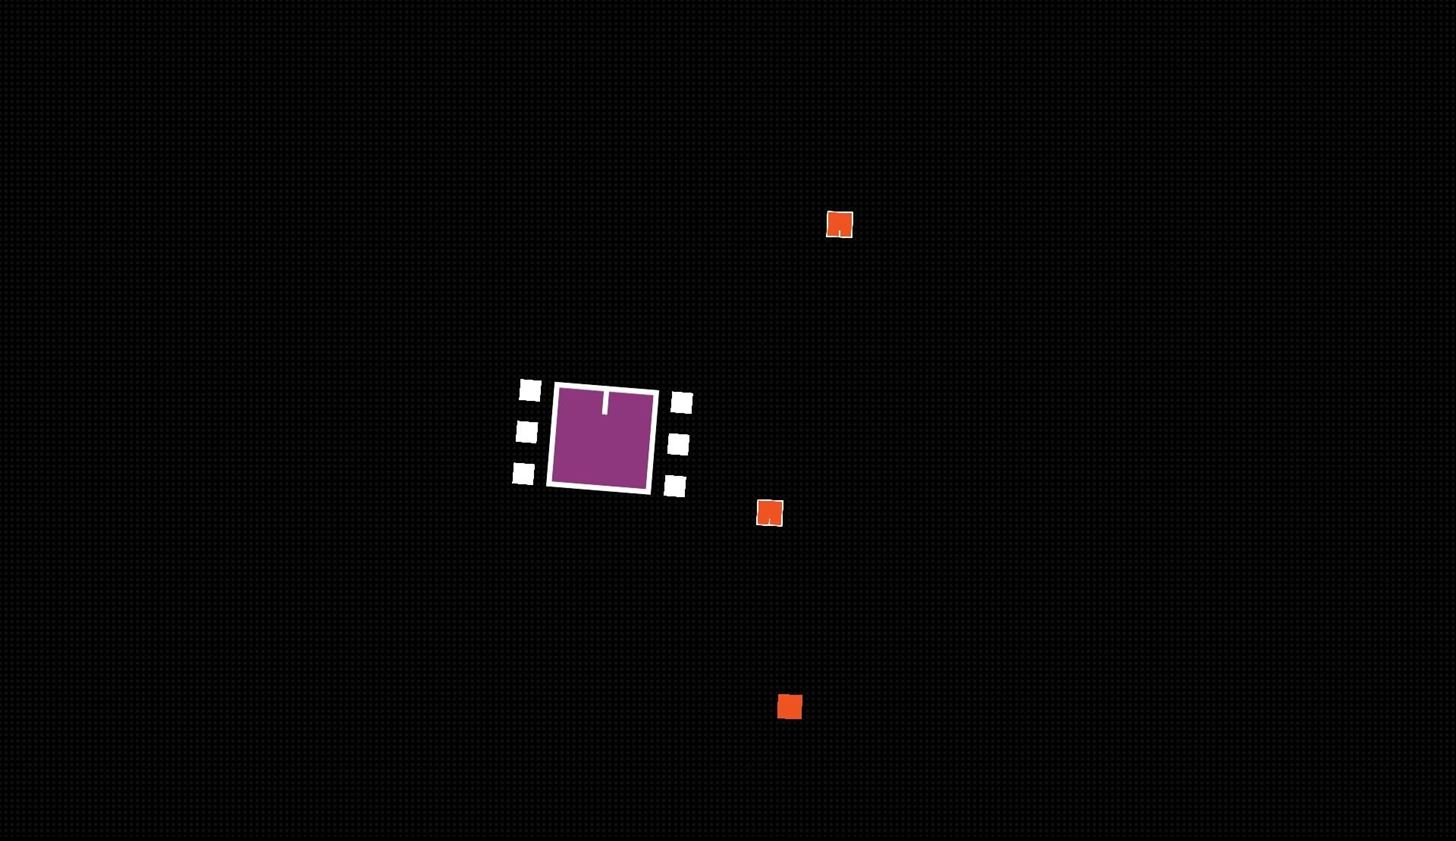 This Retro-Styled Game Lets You Shoot Projectiles from One Device to Another